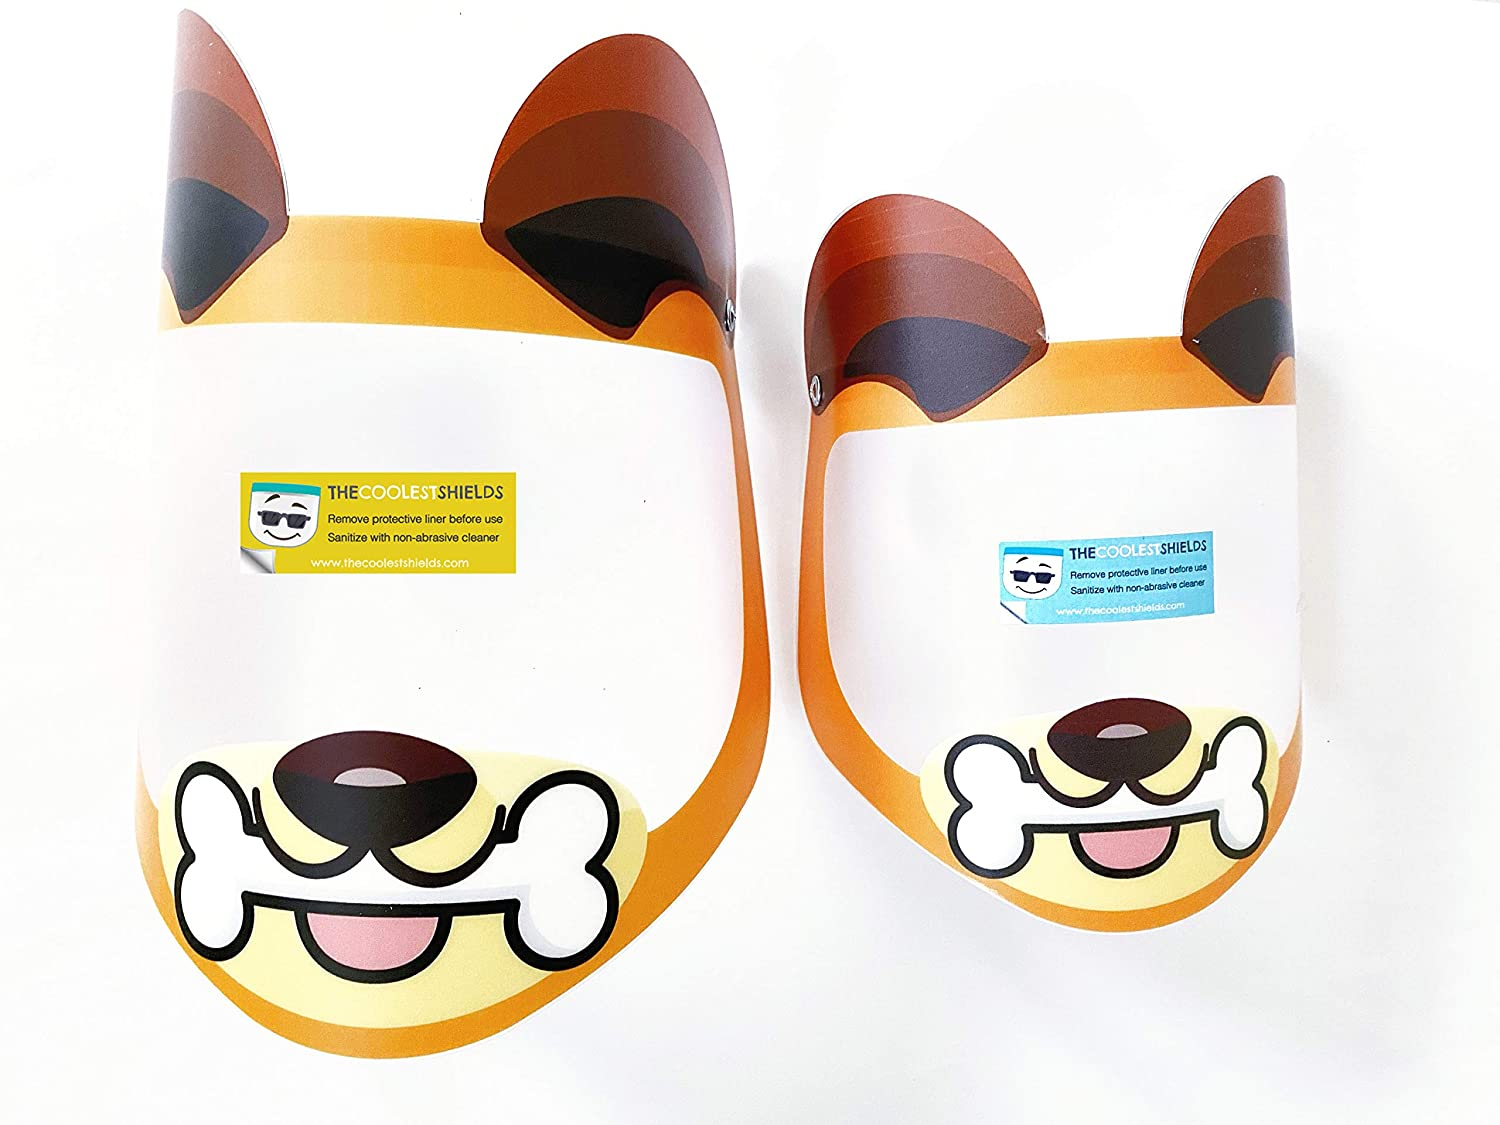 face shields for kids, back to school shopping